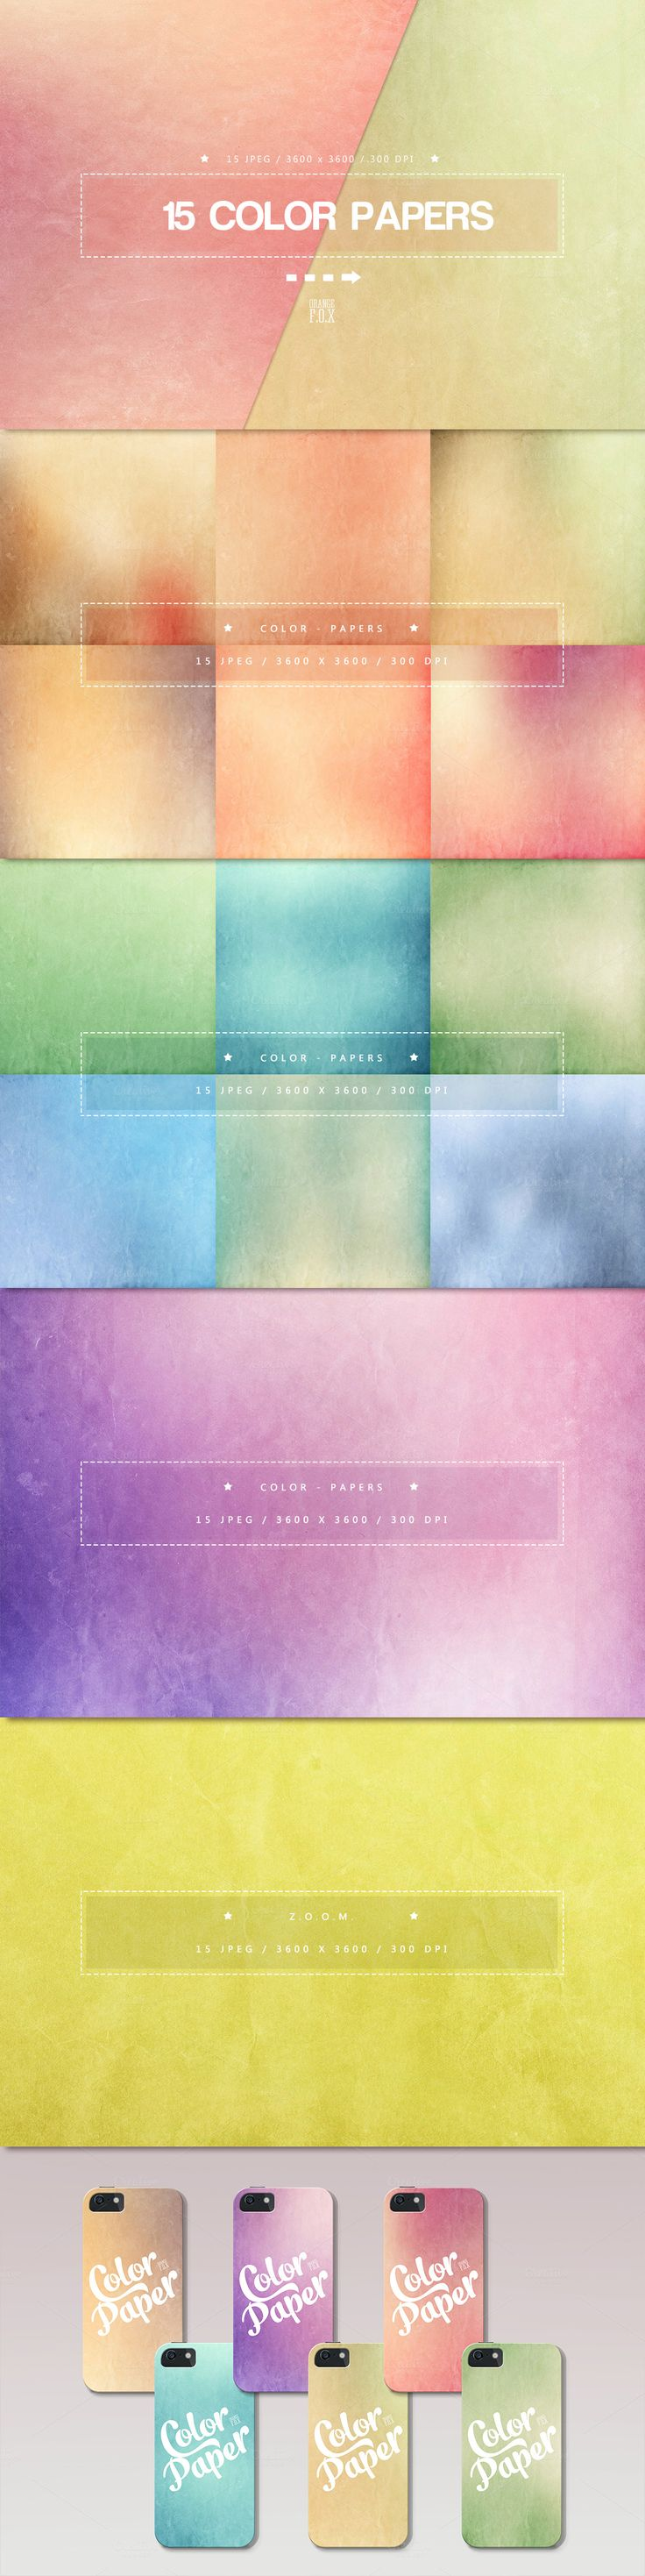 179 best Background images on Pinterest   Backgrounds, Backdrops and ...